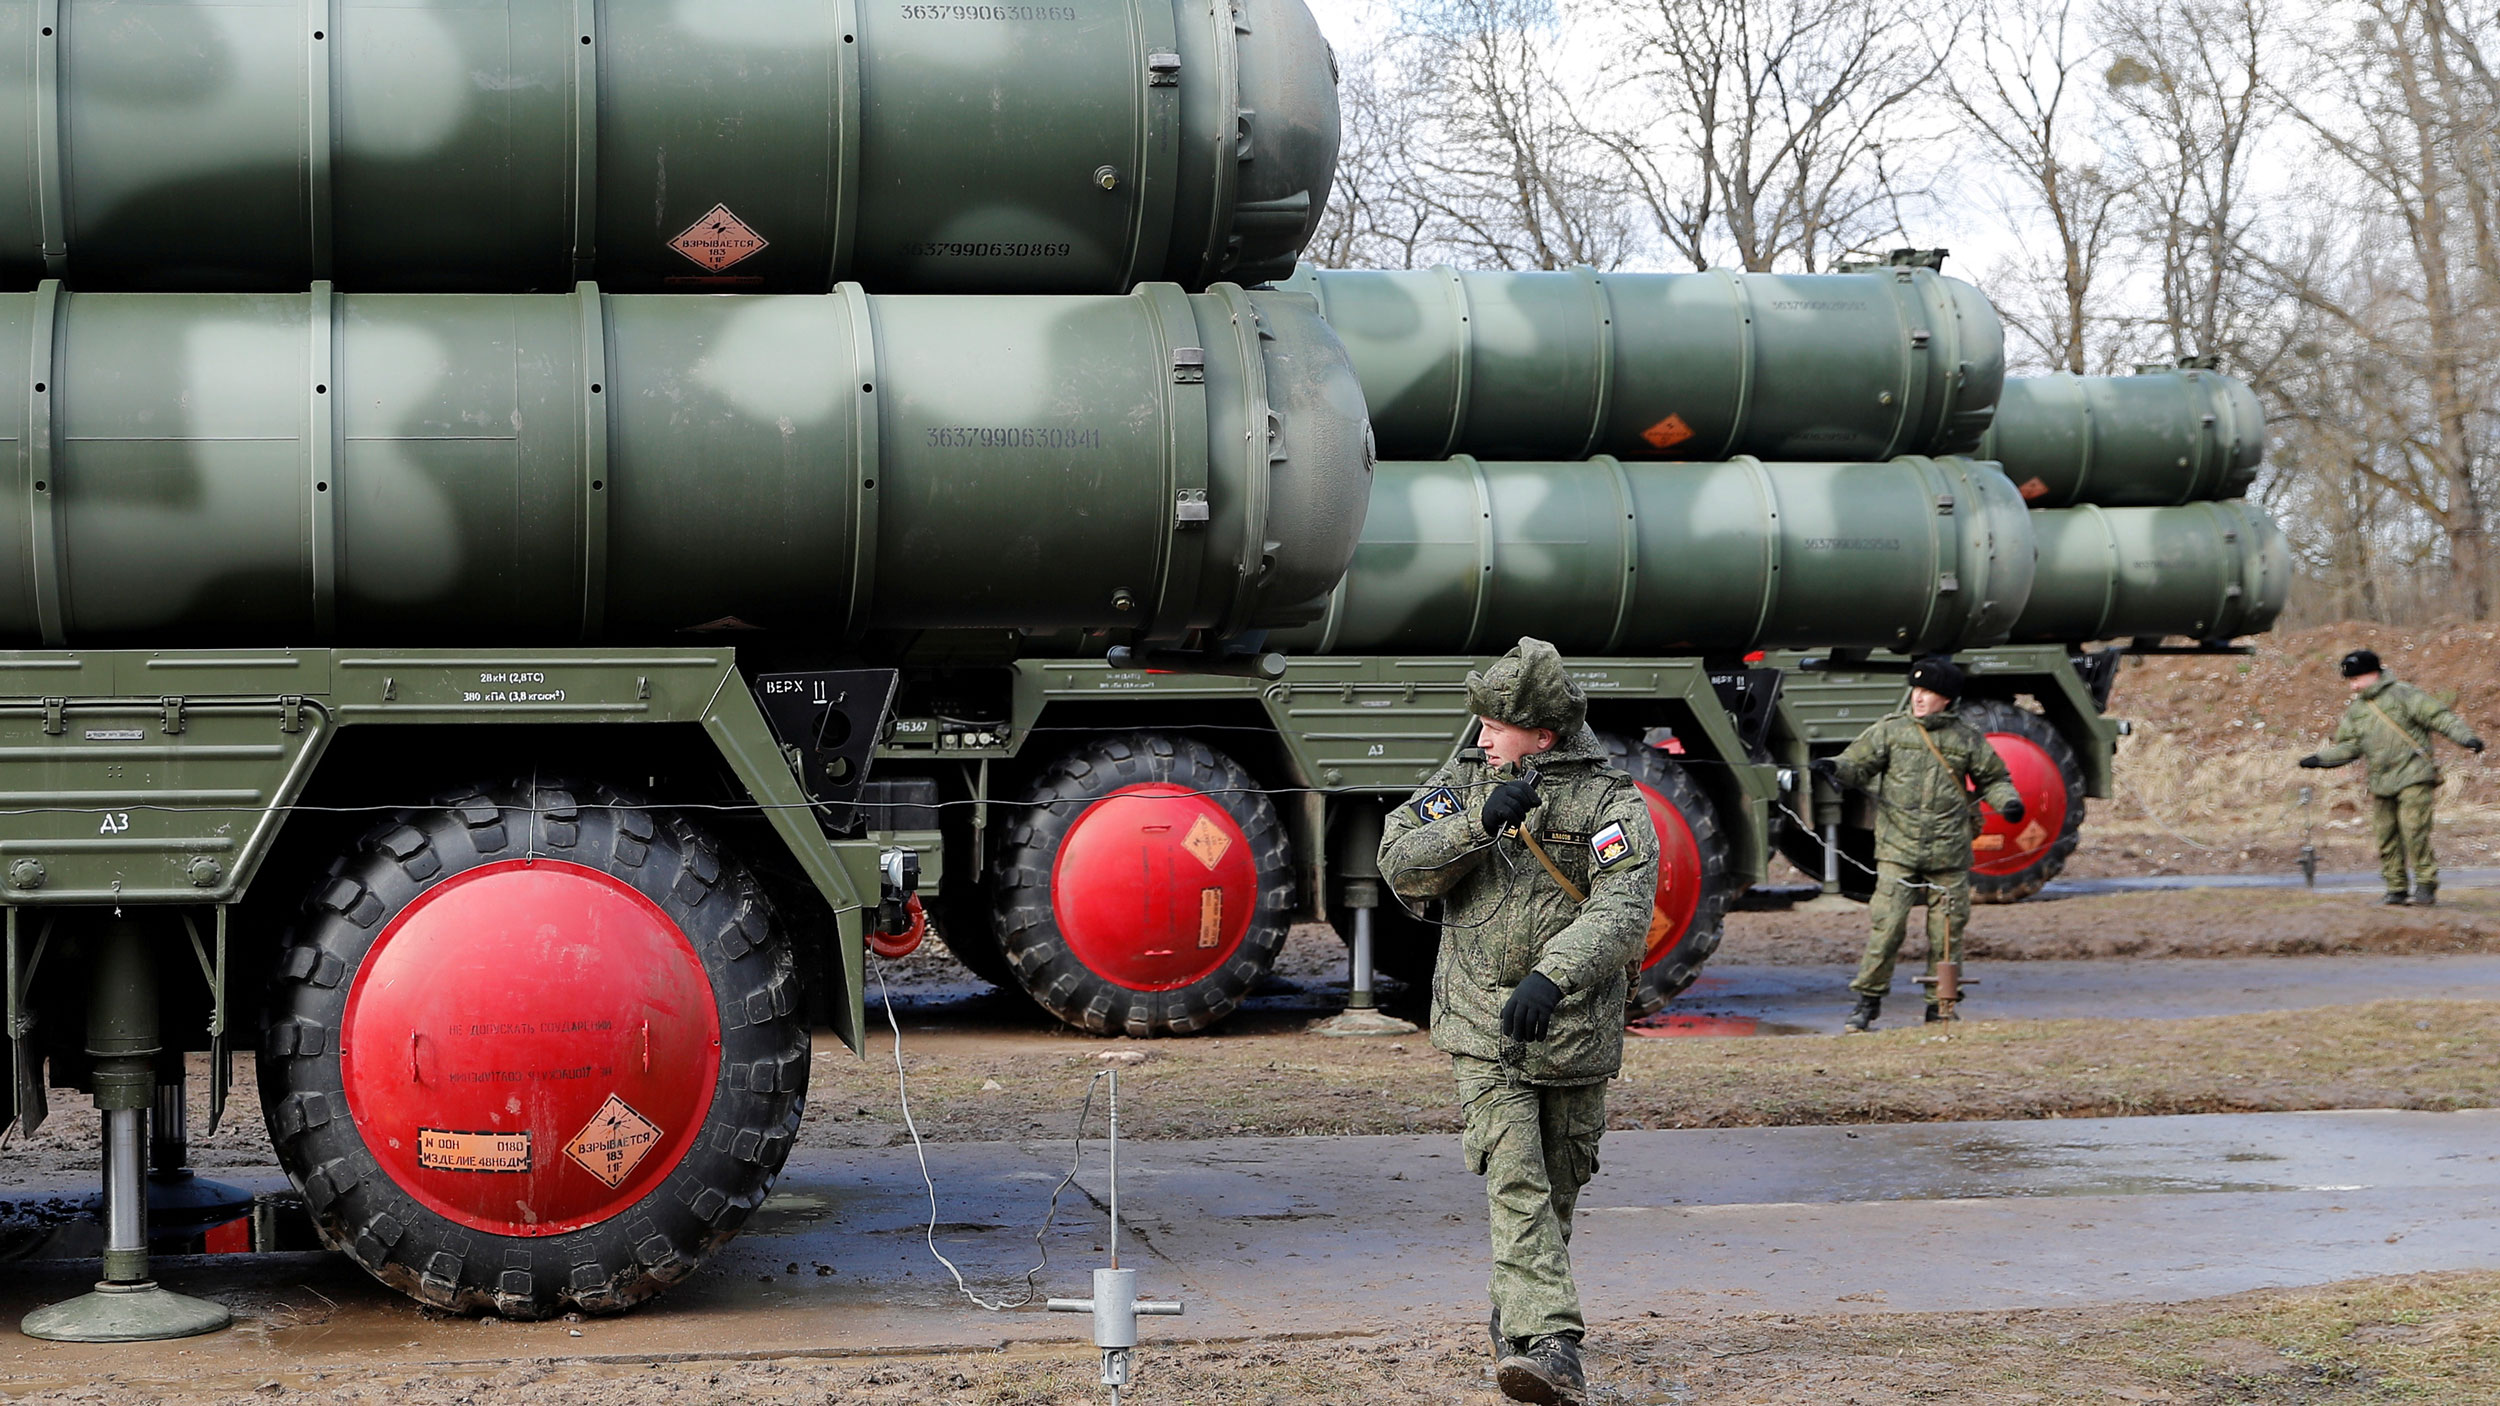 Russian servicemen dressed in fatigues stand next to a large trucks with surface-to-air missile system on top.